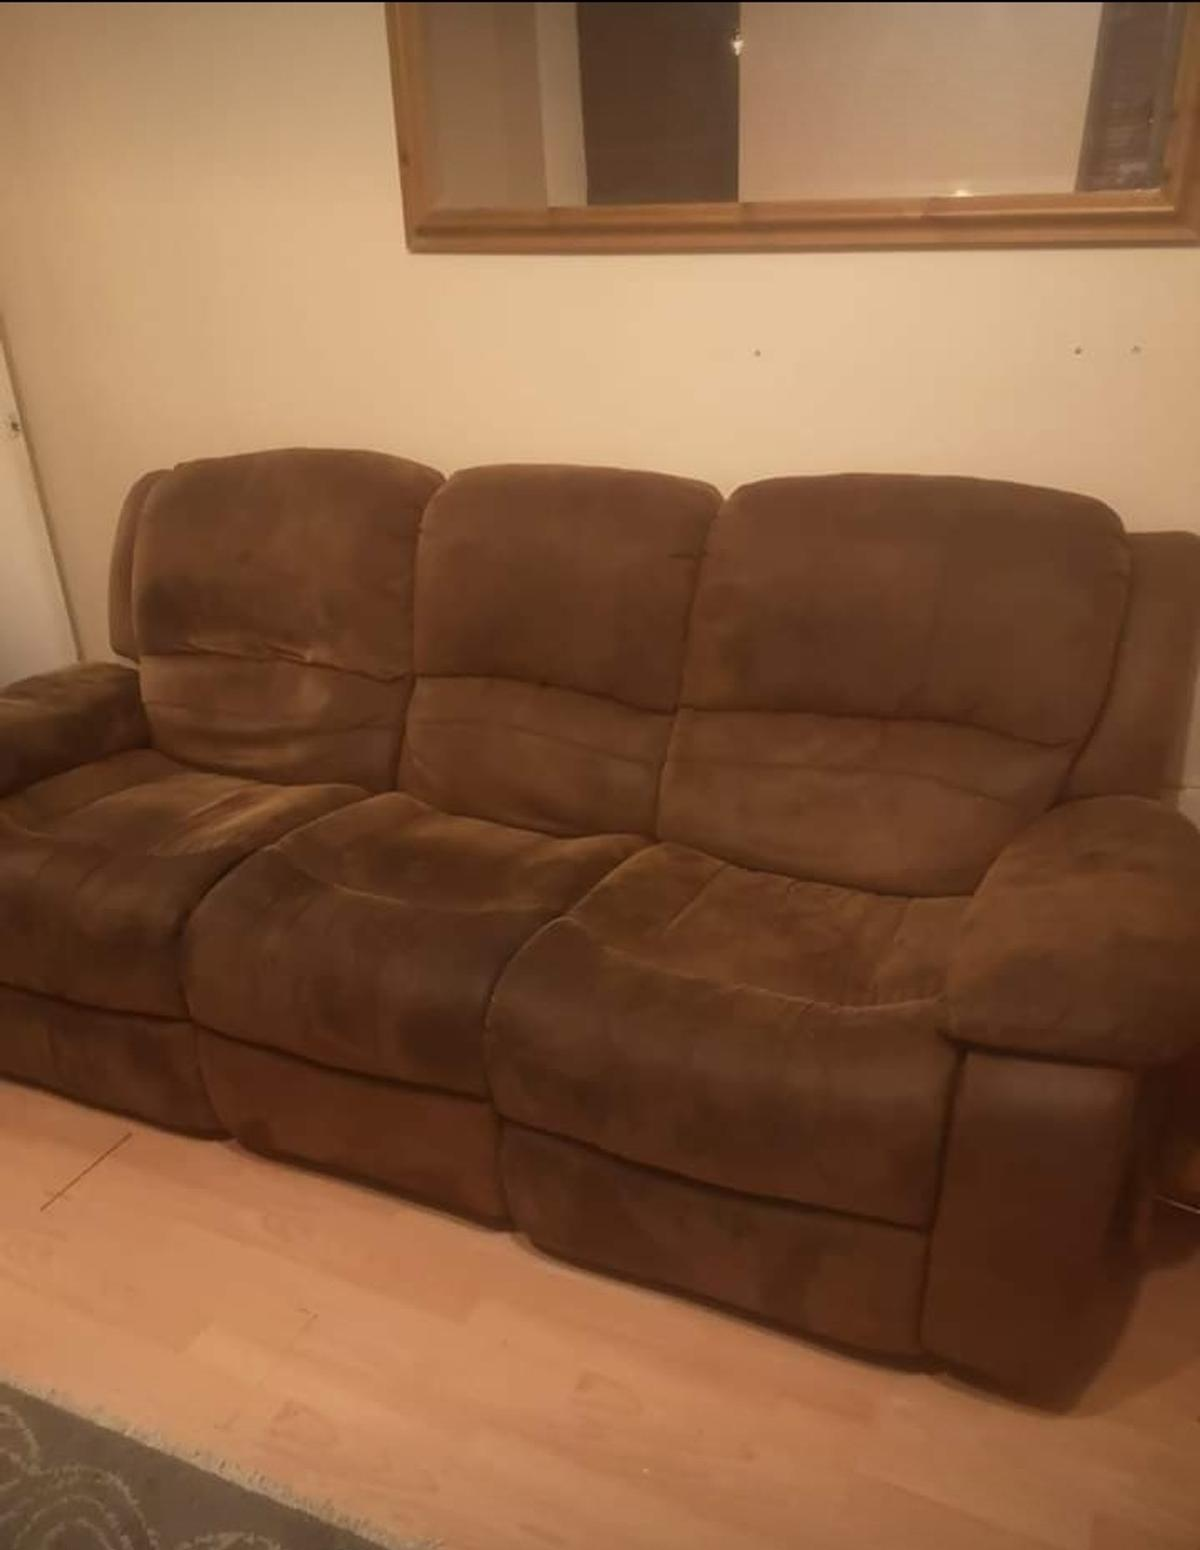 Here for sale I have this Harvey's brown faux suede 3 seater sofa which has manual recliner at both ends.  Item does have scratches/marks/stains/signs of use as expected but still has life left in it. Height 99cm  Width 200cm  Depth 97cm  It does come apart for easy removal.  collection from Peckham  Grab yourself a bargain...need gone by Sunday 12.1.2020